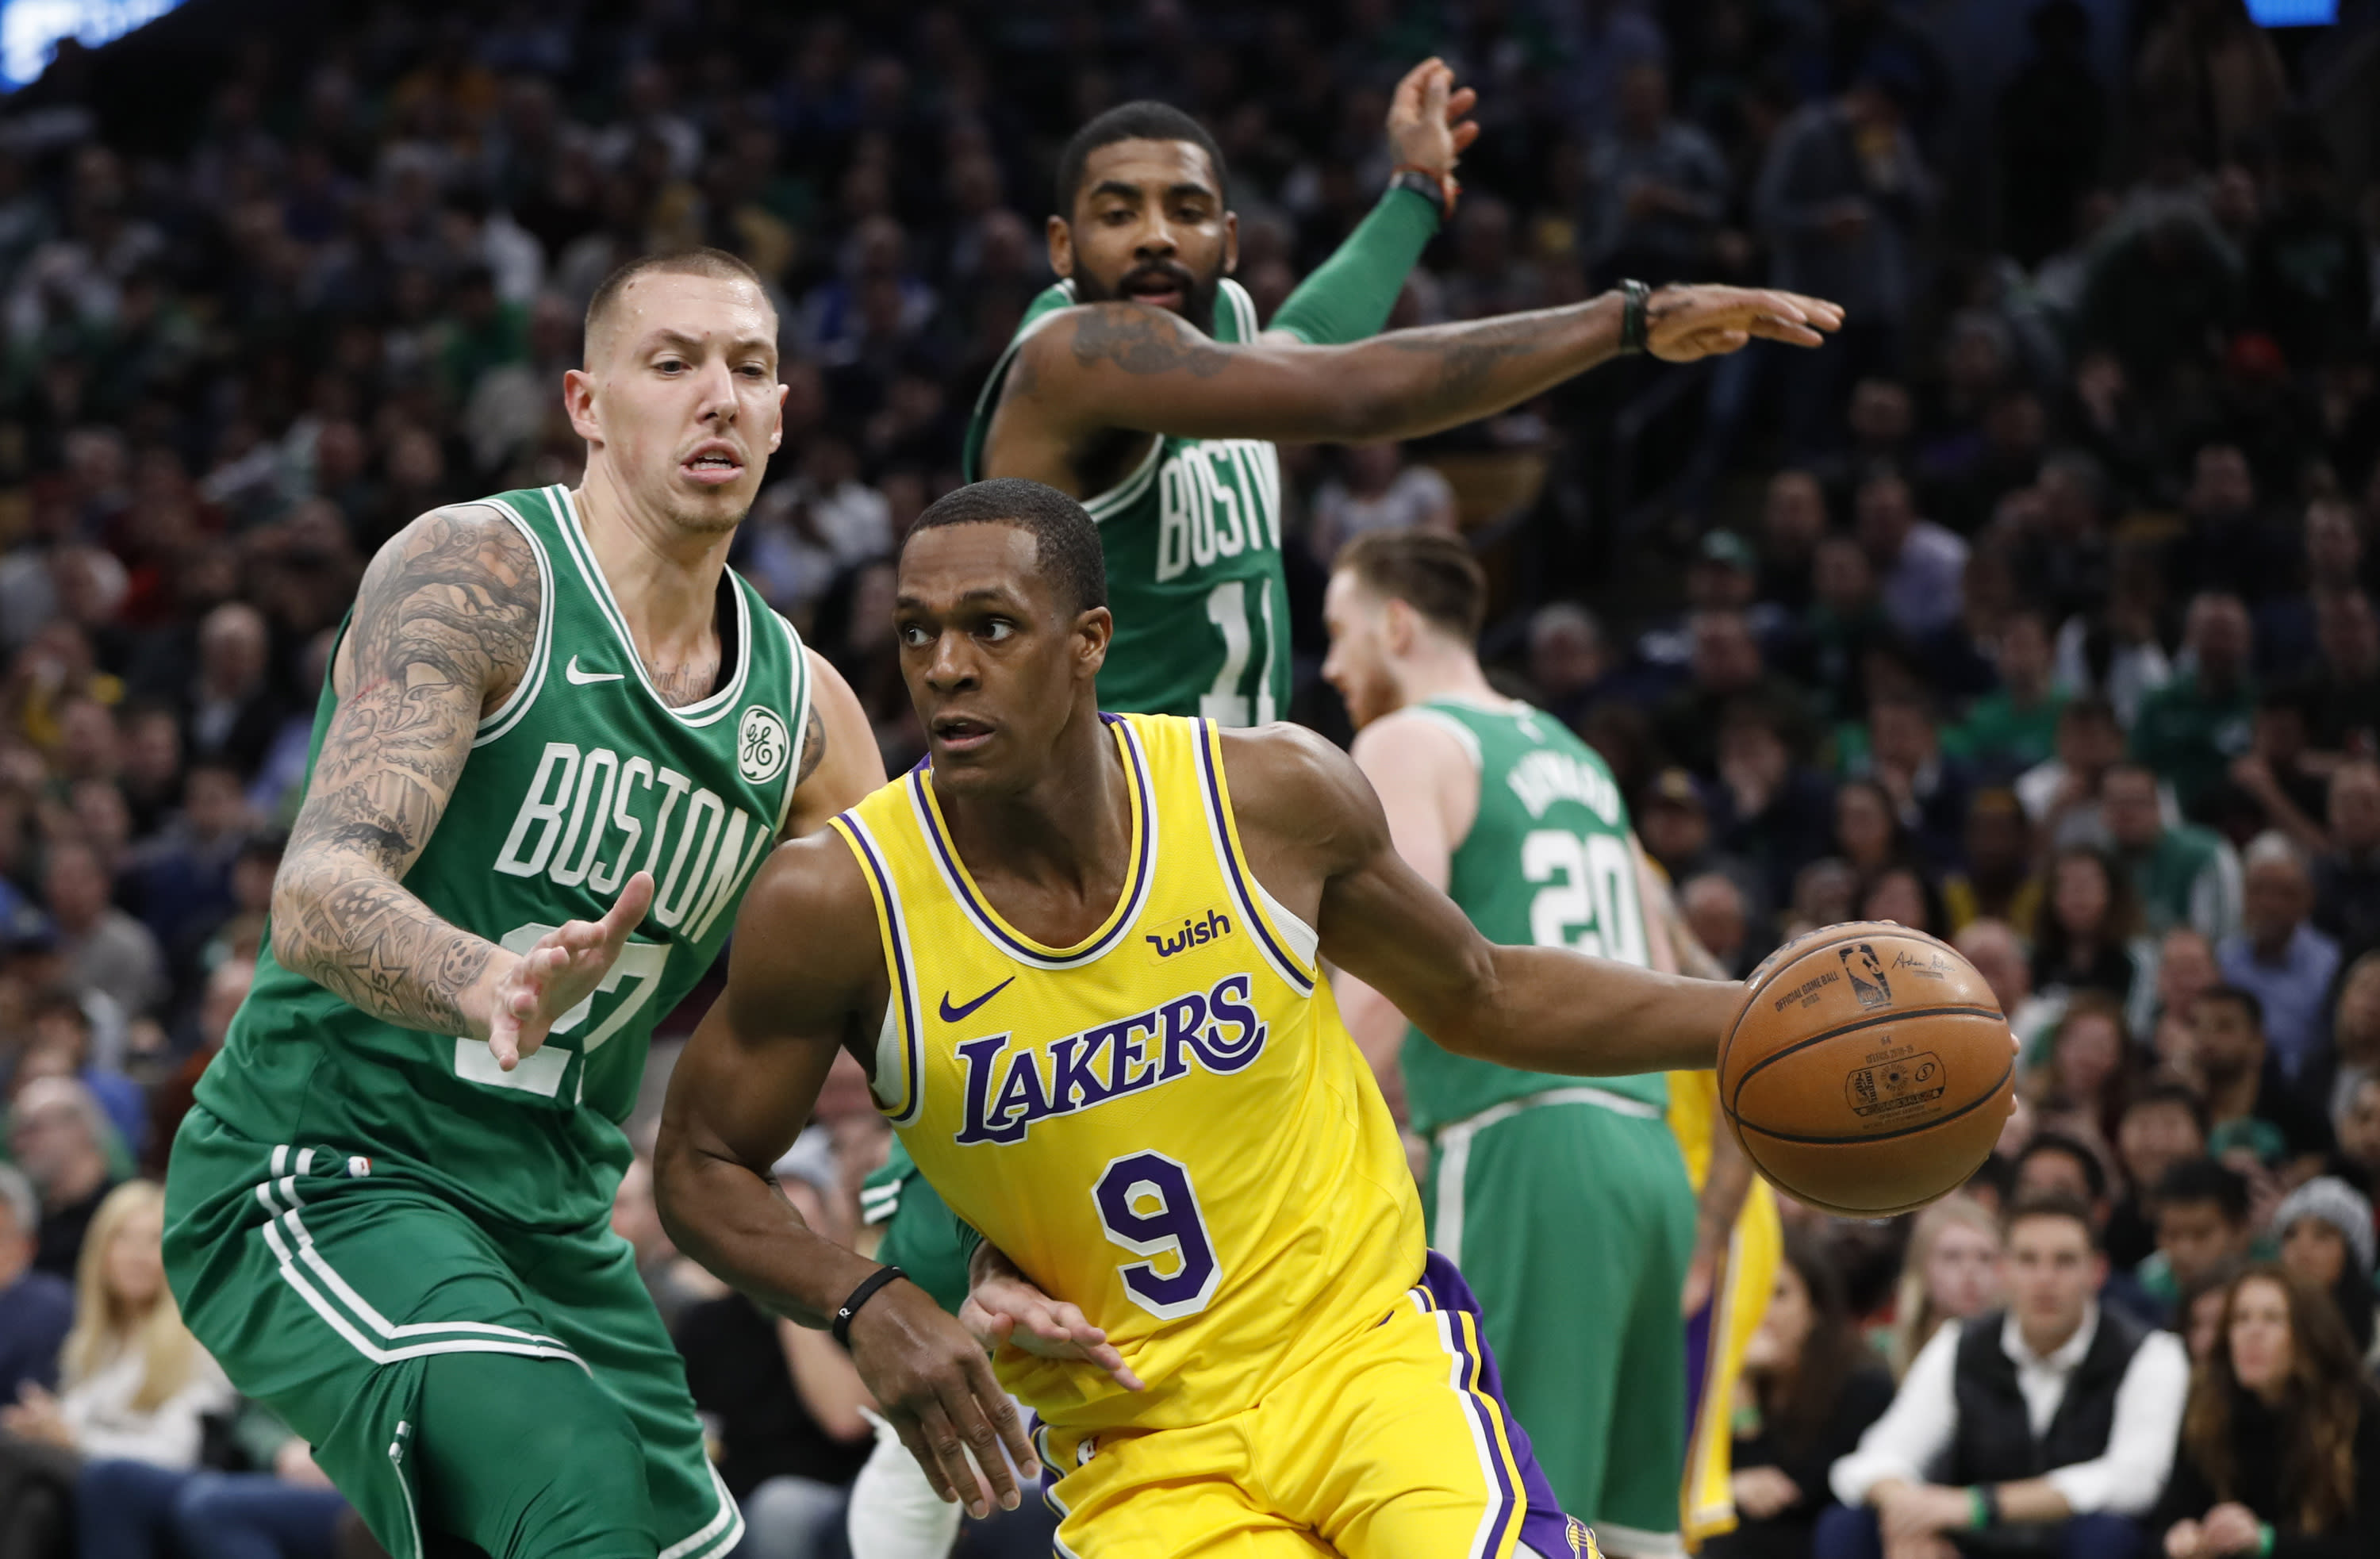 Lakers Highlights >> Highlights From Celtics 129 128 Loss To Lakers